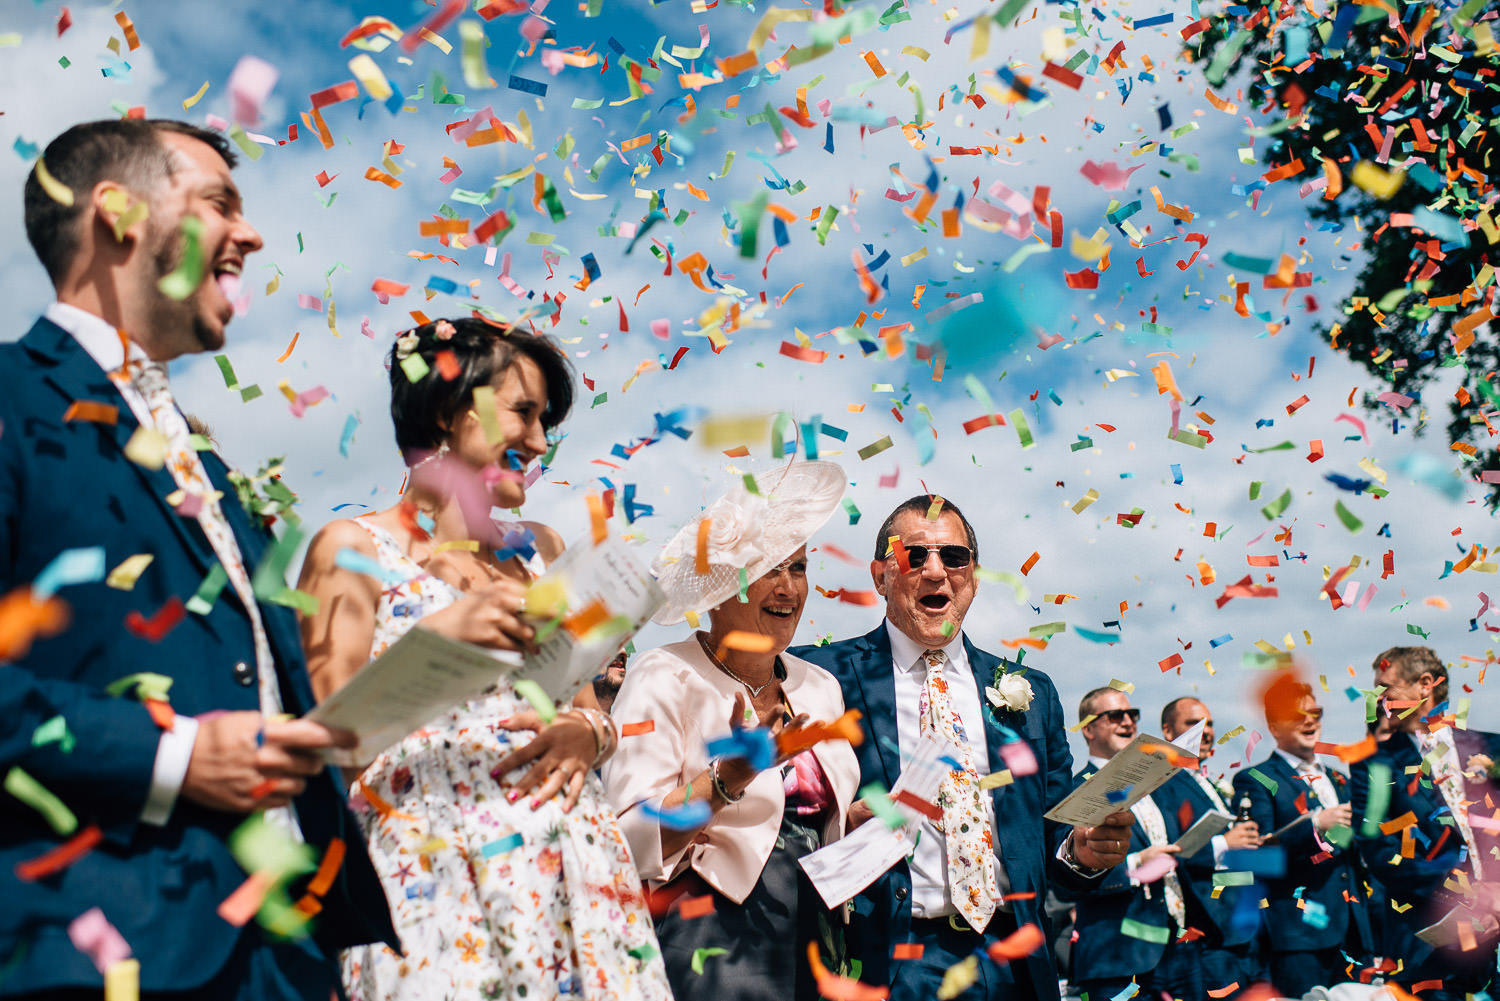 confetti canon at festival wedding by creative and alternative london wedding photographer the shannons photography